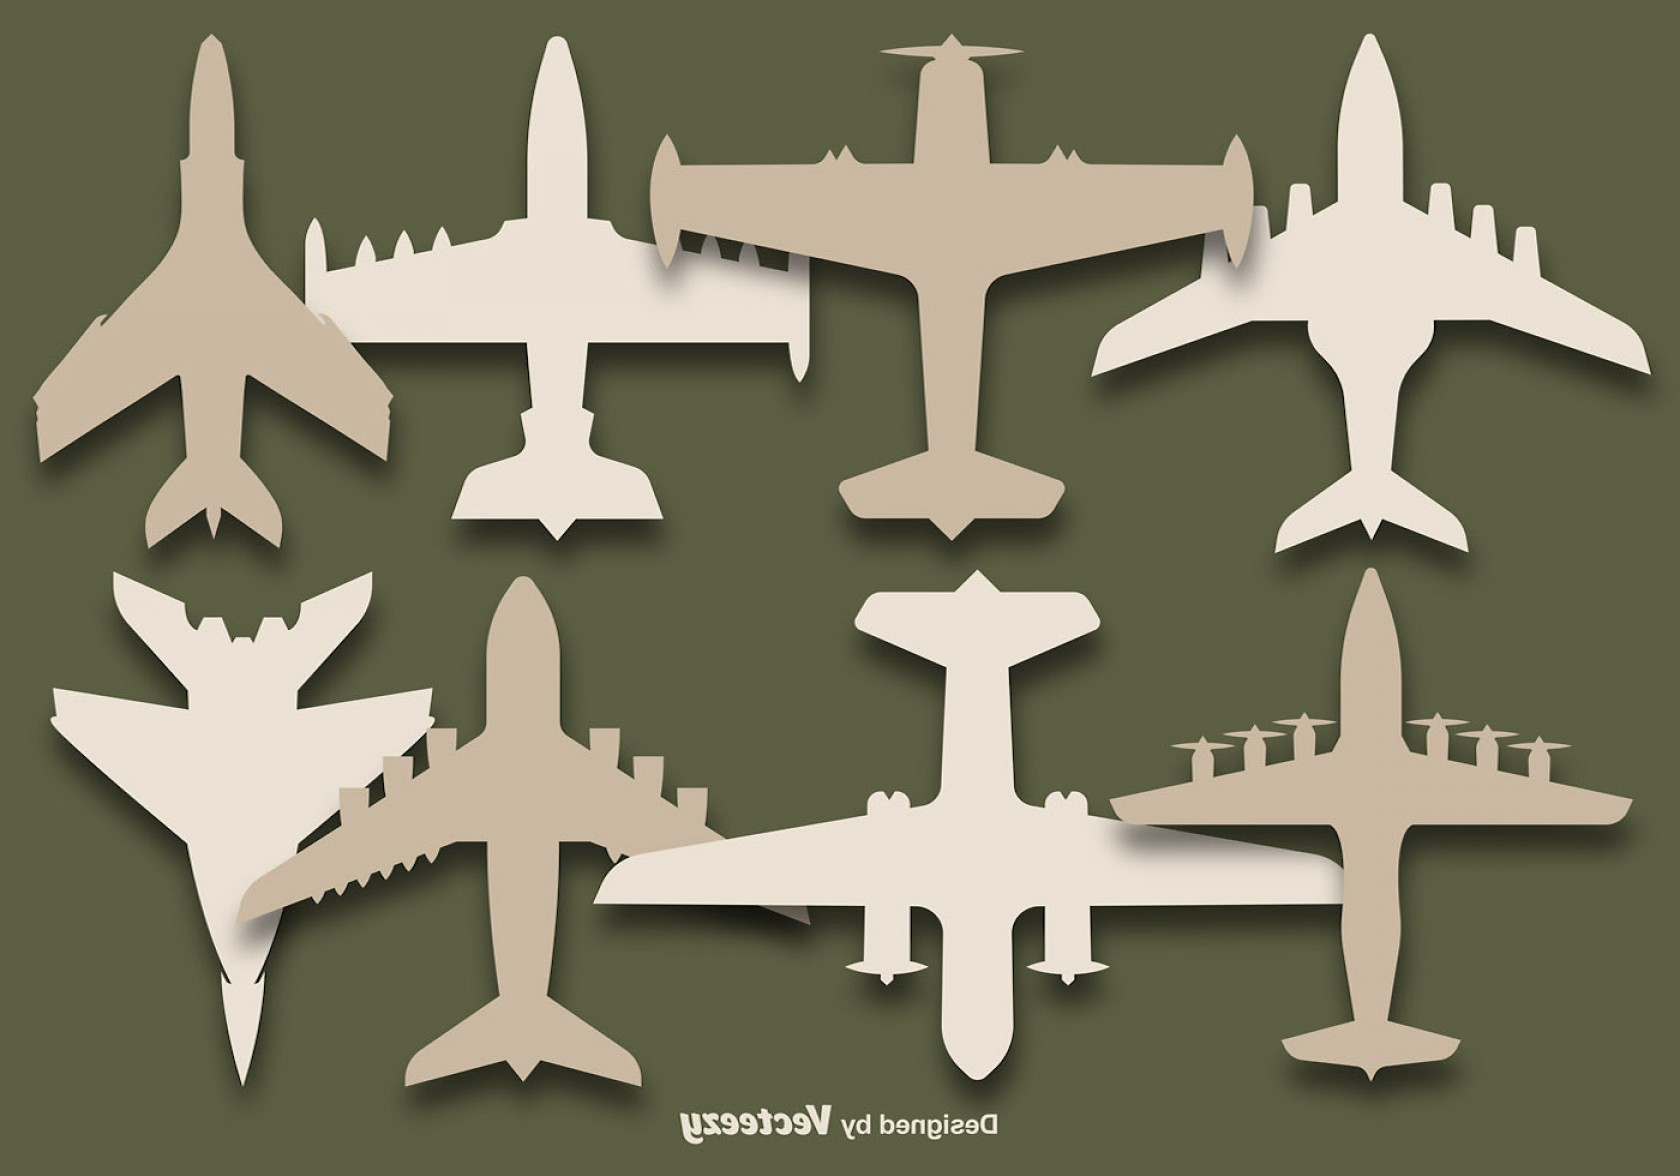 Old School Airplane Fighter Silhouette Vector: Vector Set Of Airplanes Silhouettes